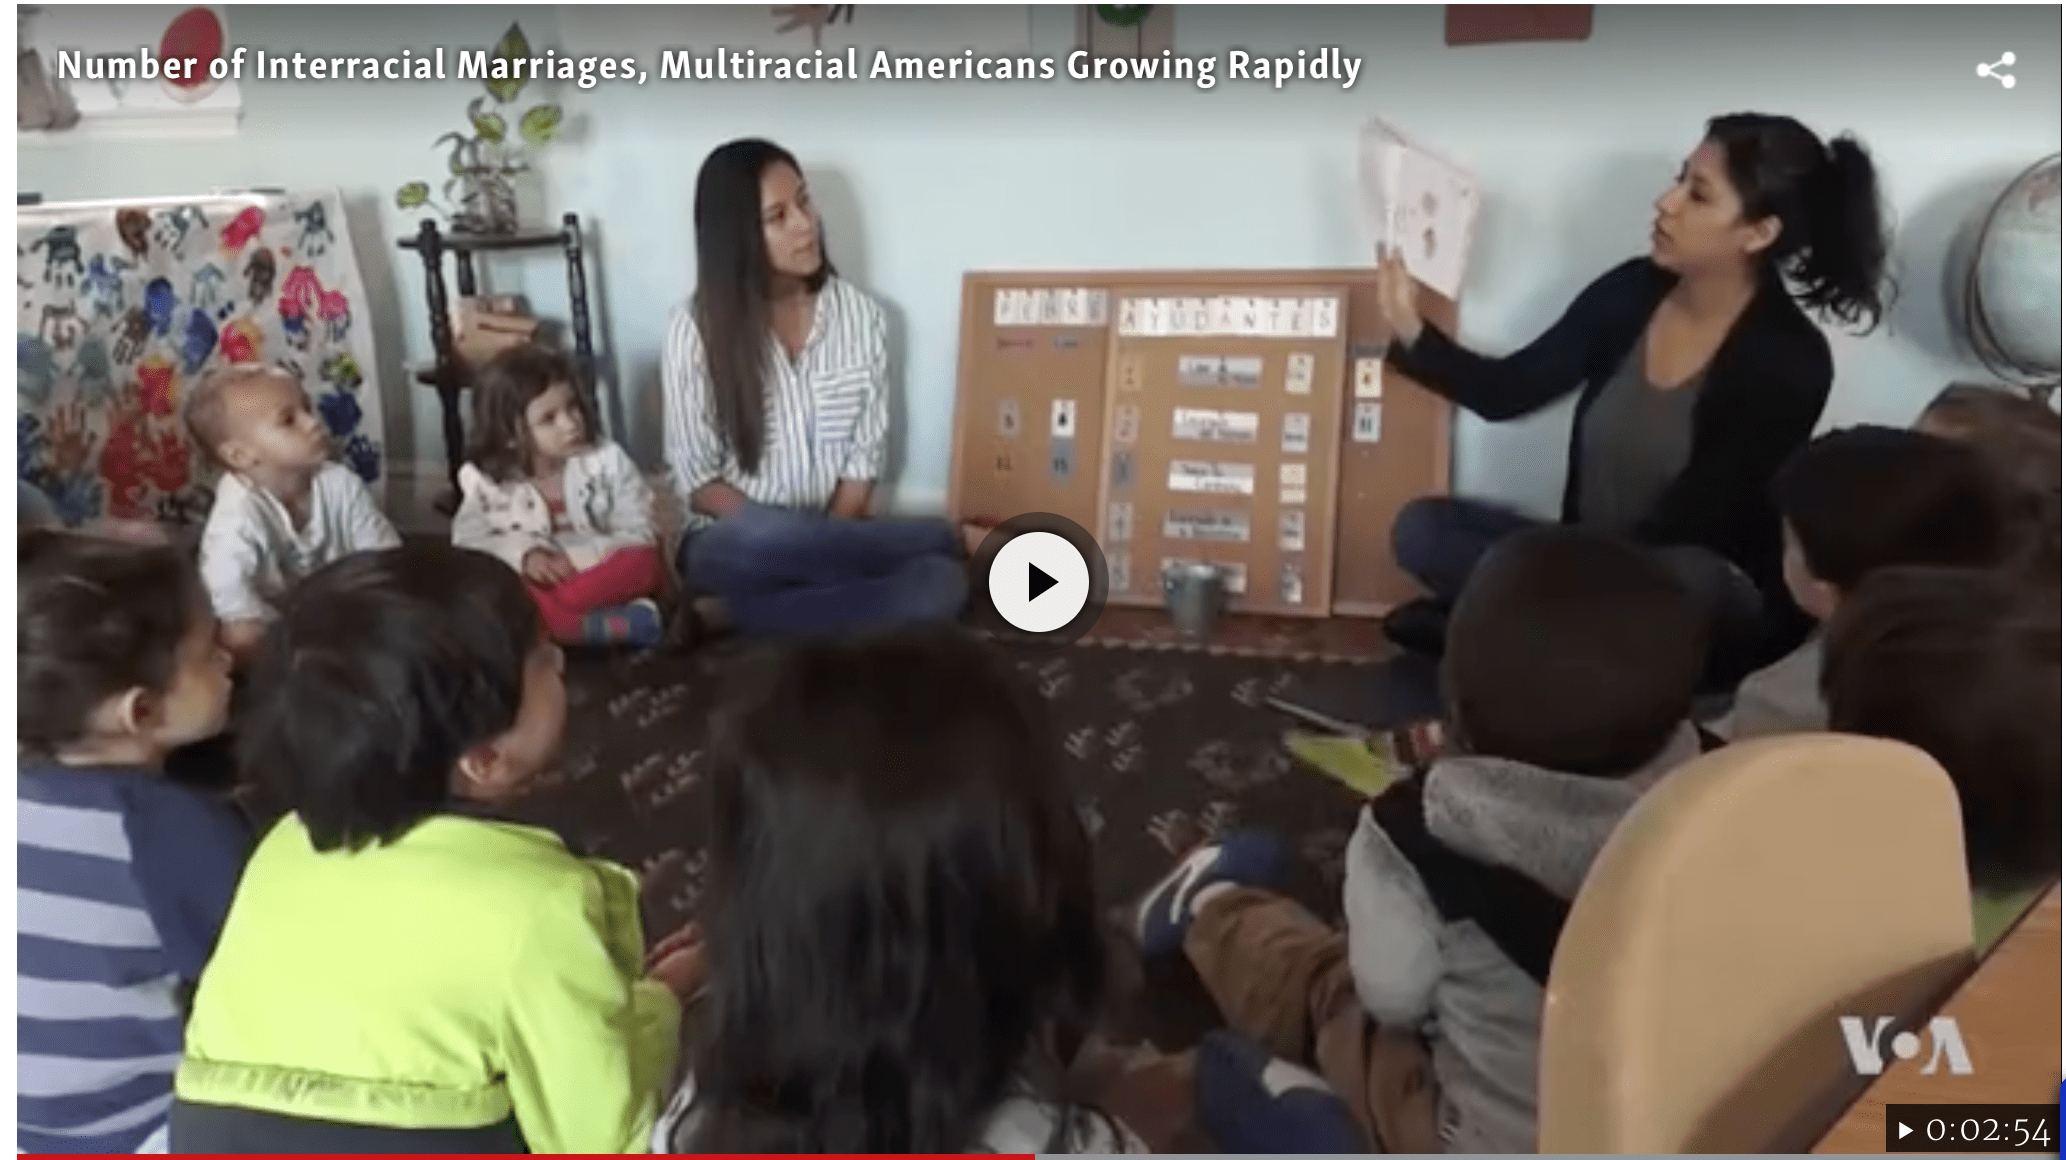 WCC Featured on VOA for Supporting Mixed Families